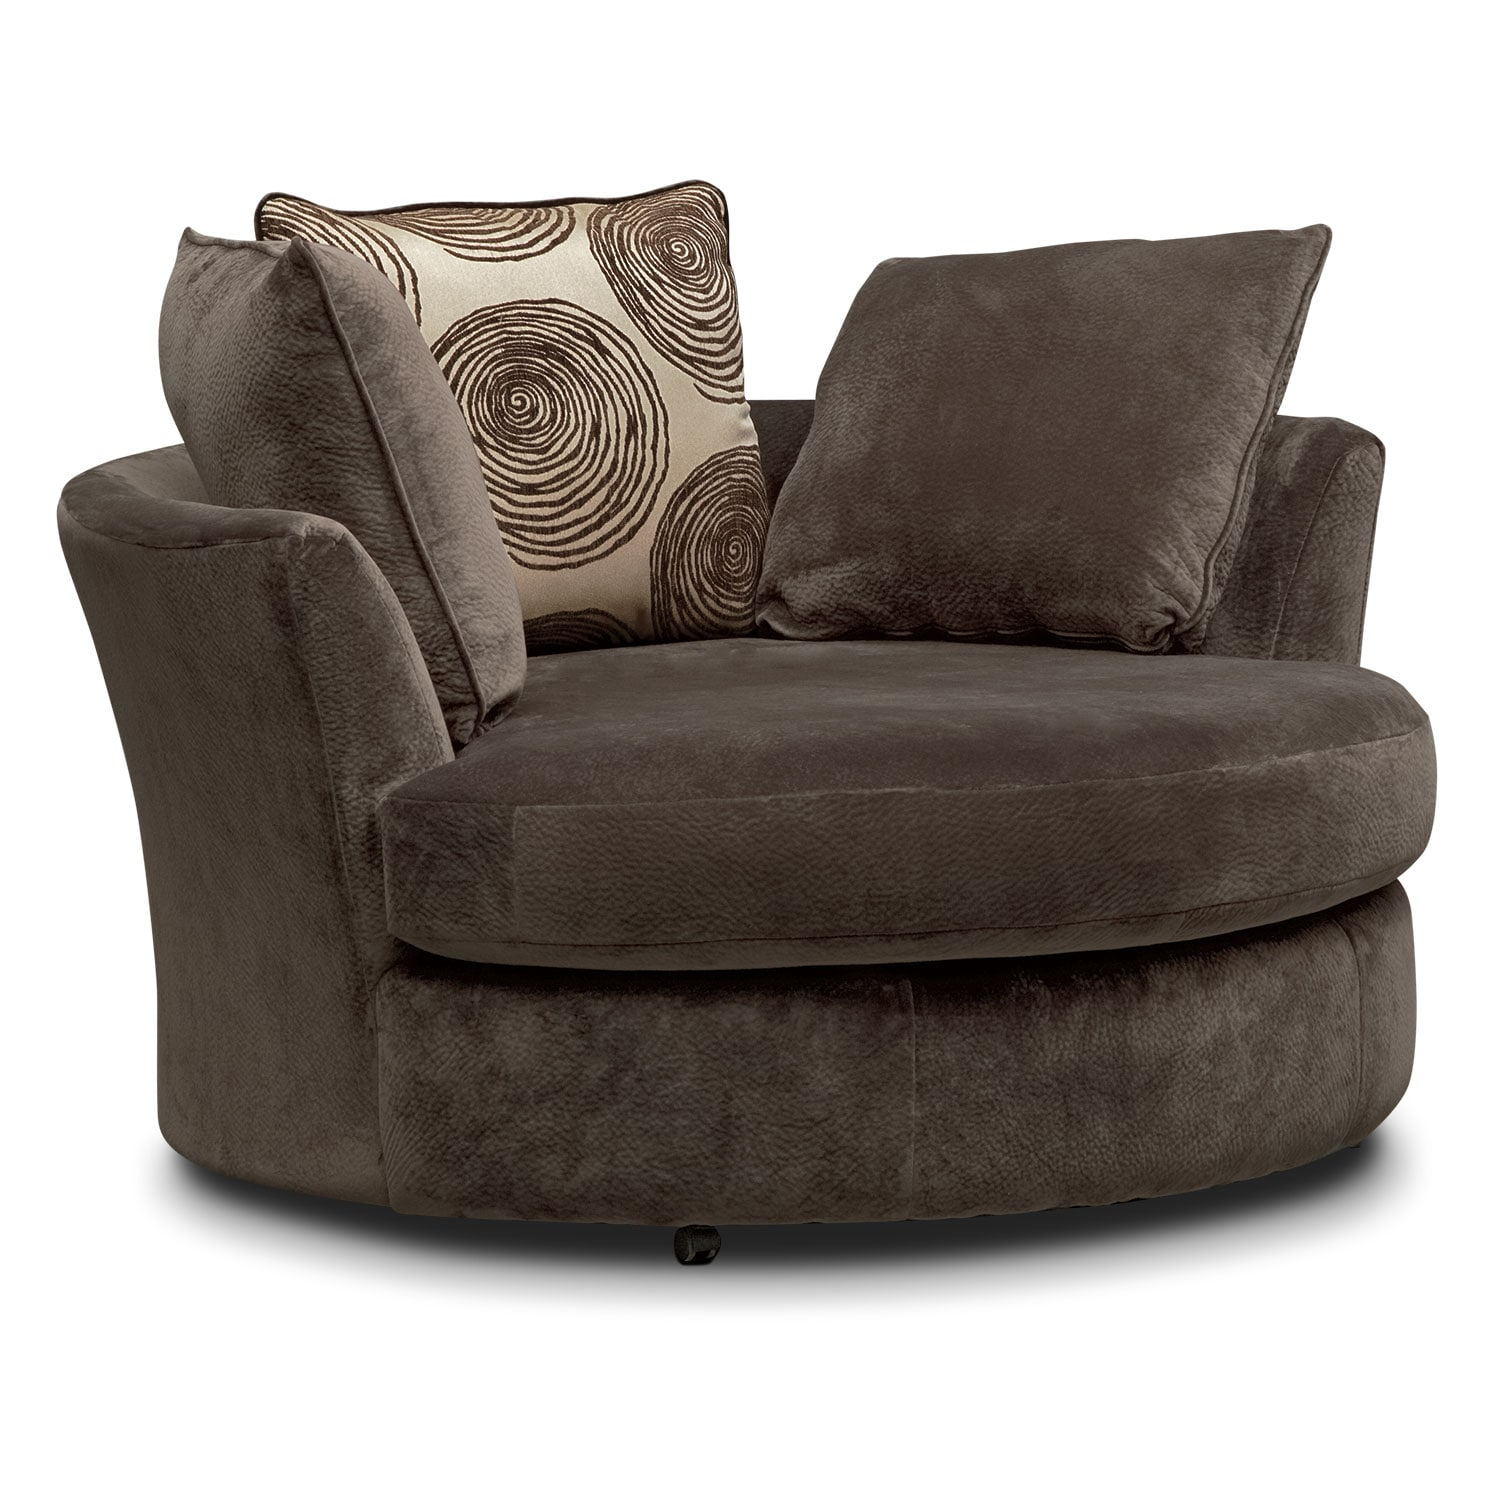 Value City Furniture Living Room Cordelle 3 Piece Sectional And Swivel Chair Set Chocolate